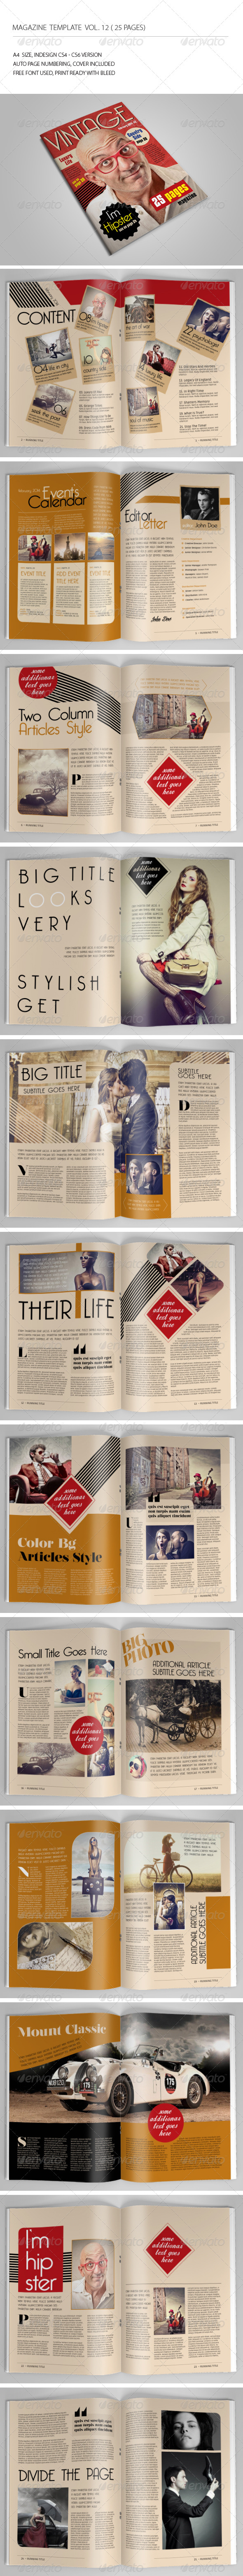 GraphicRiver 25 Pages Vintage Magazine Vol12 6917452